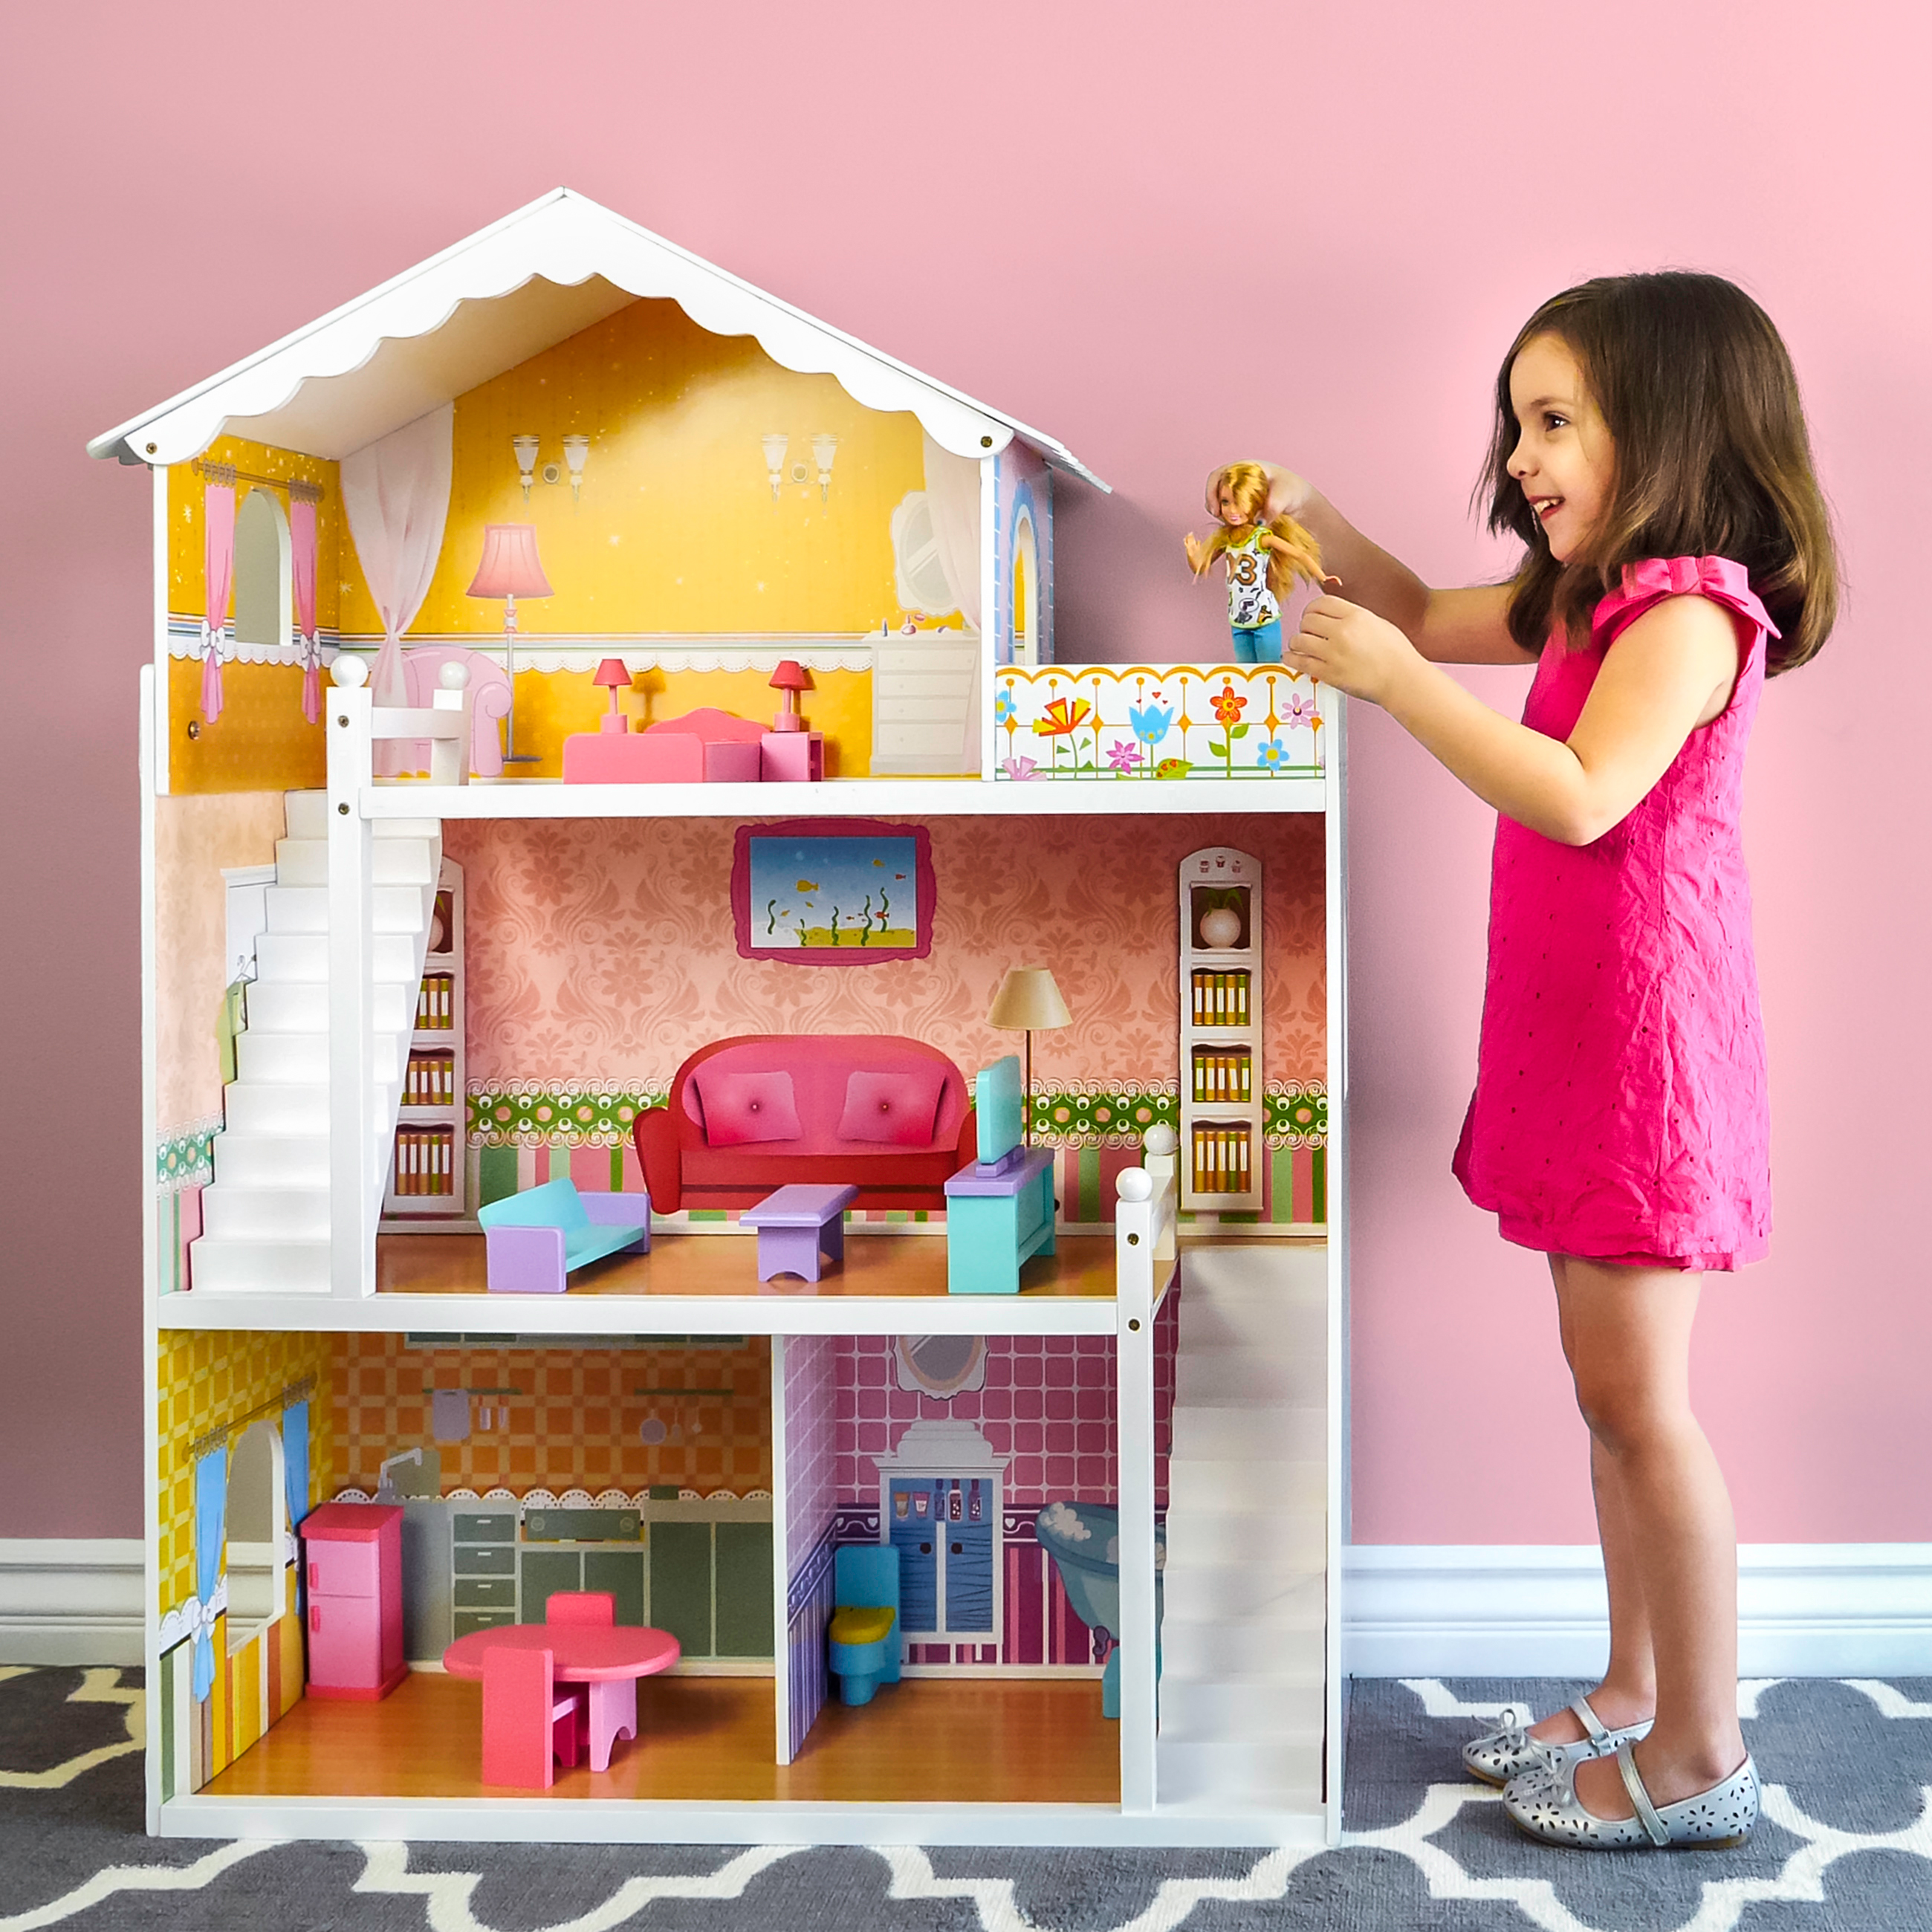 Best Choice Products Large Childrens Wooden Dollhouse Fits Barbie Doll House Pink w  17 Pieces of Furniture by Best Choice Products